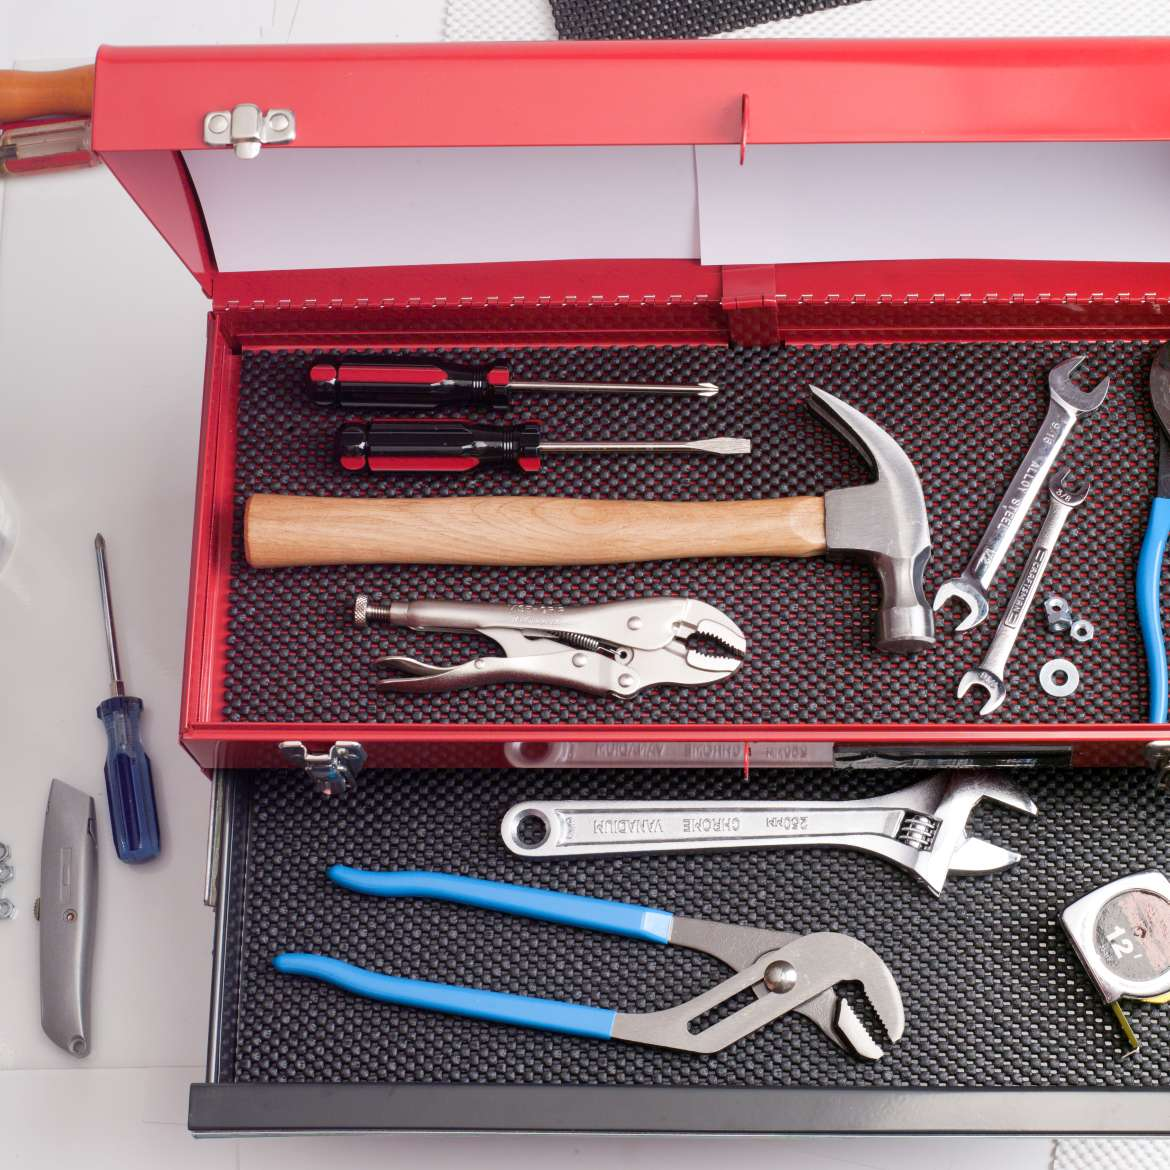 Select Grip™ Tool Box EasyLiner®